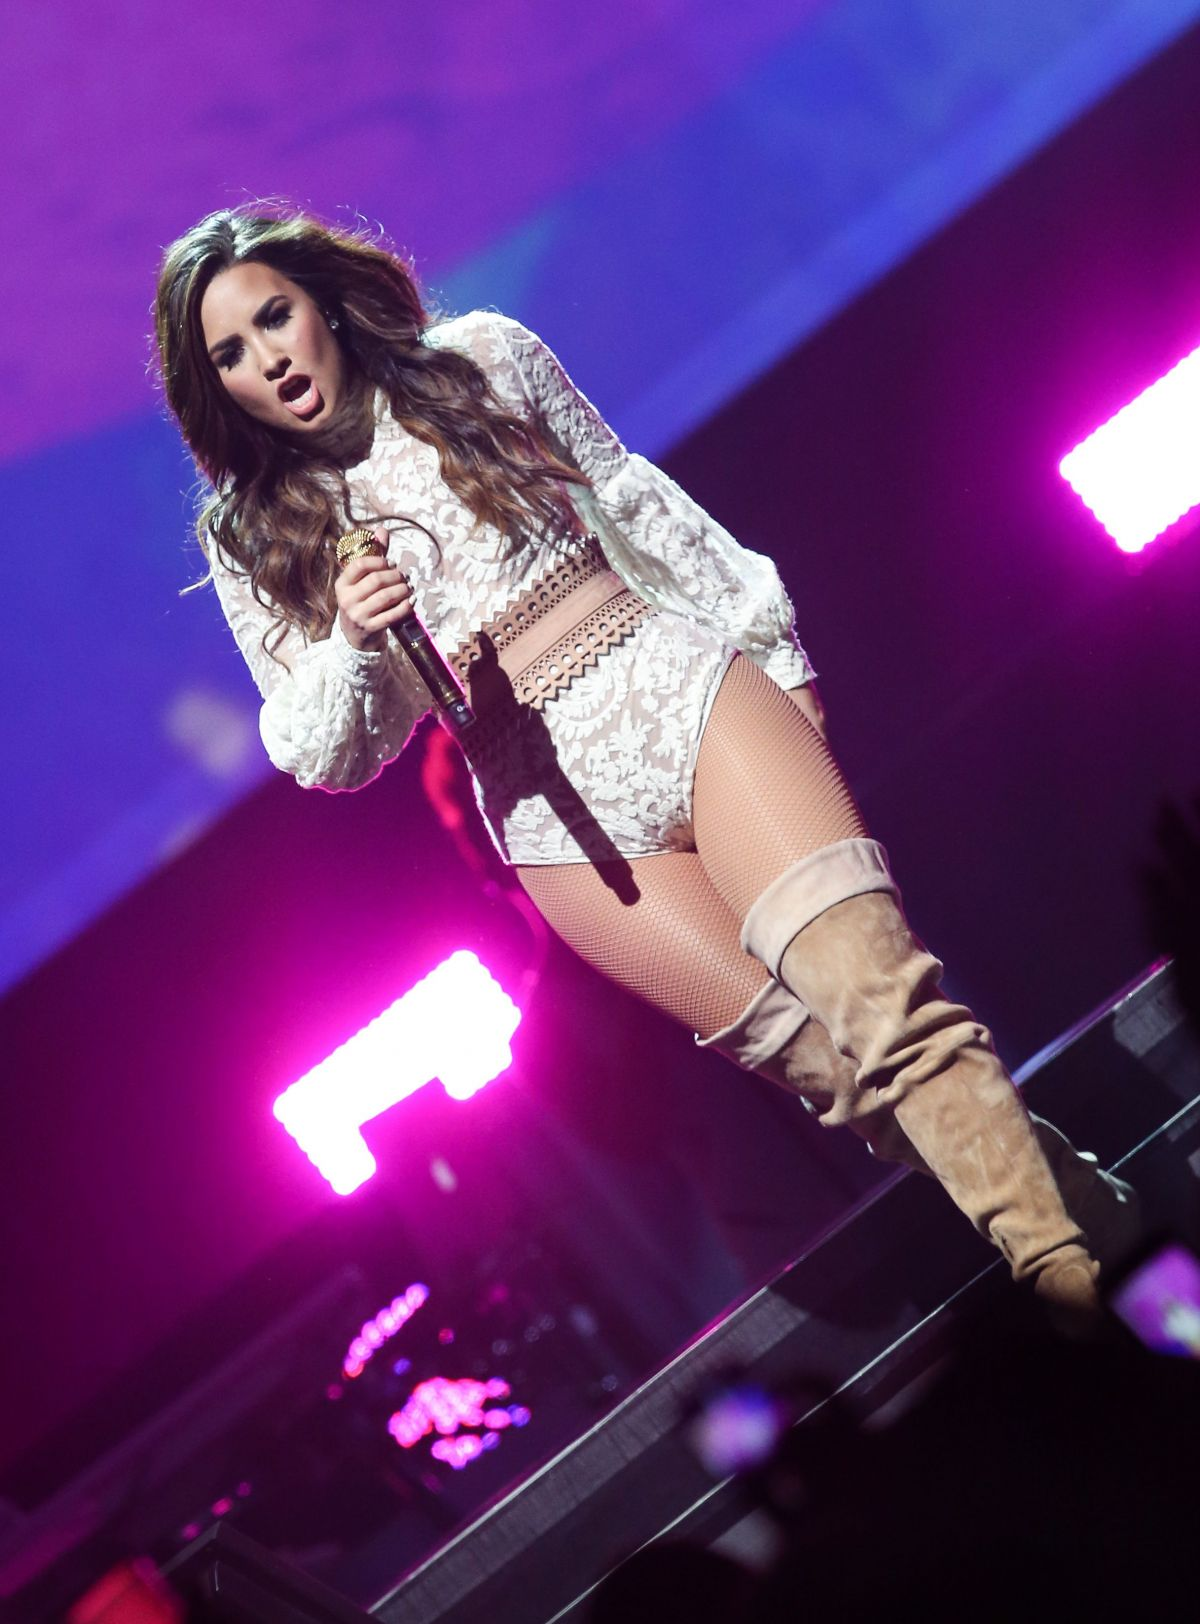 Demi Lovato Performs At A Concert In Nashville